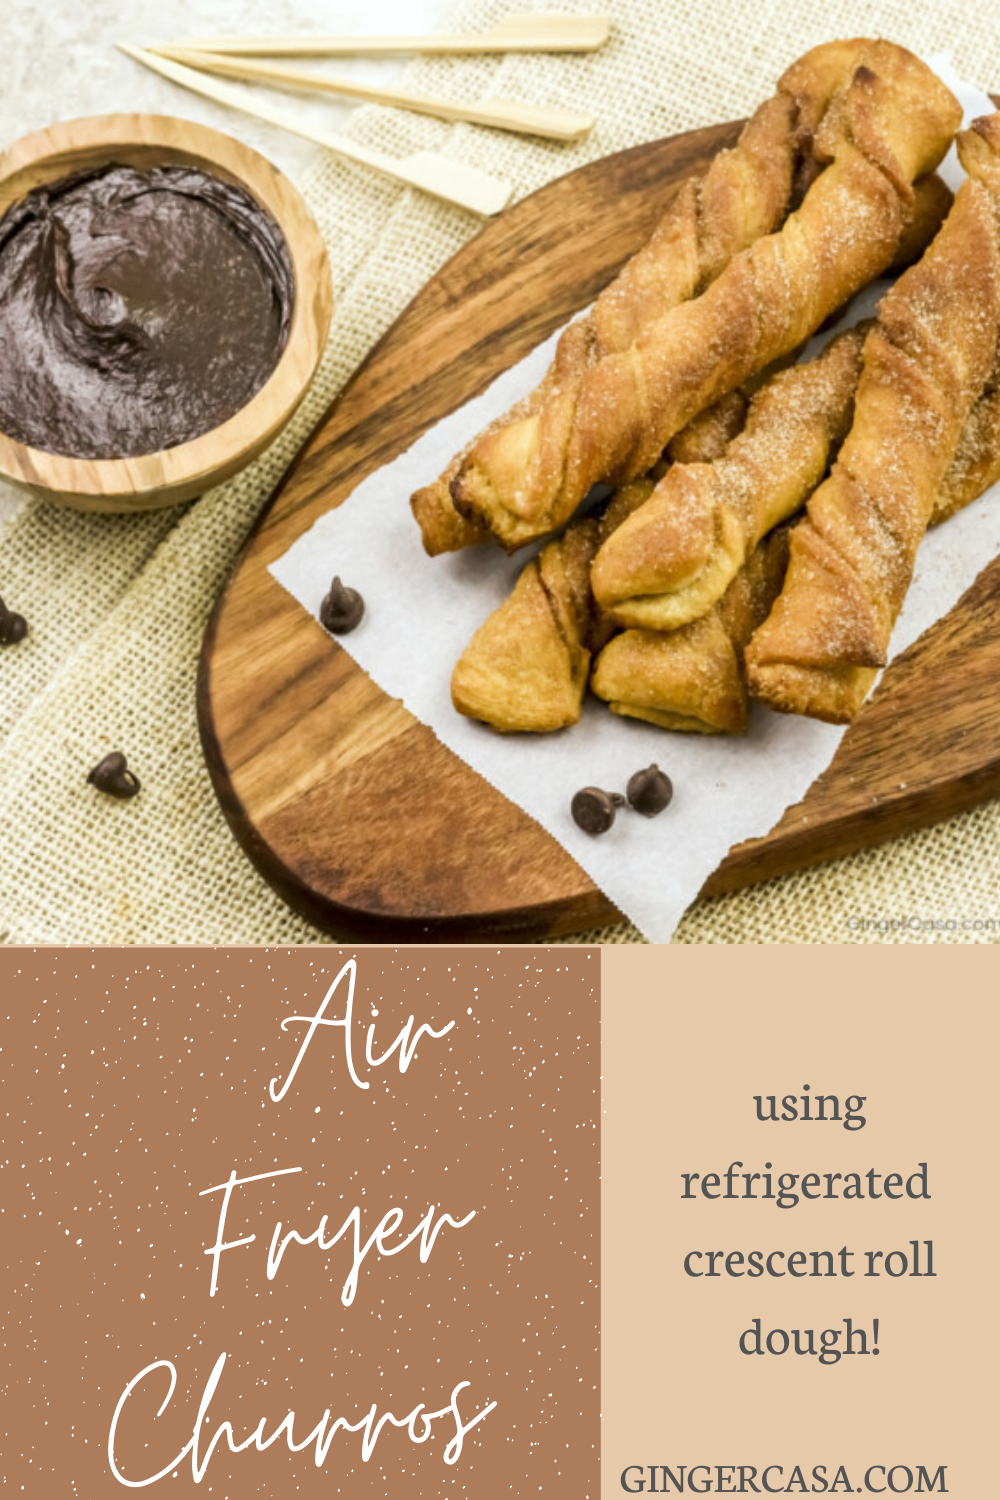 These Air Fryer Churros are quick and easy to make and